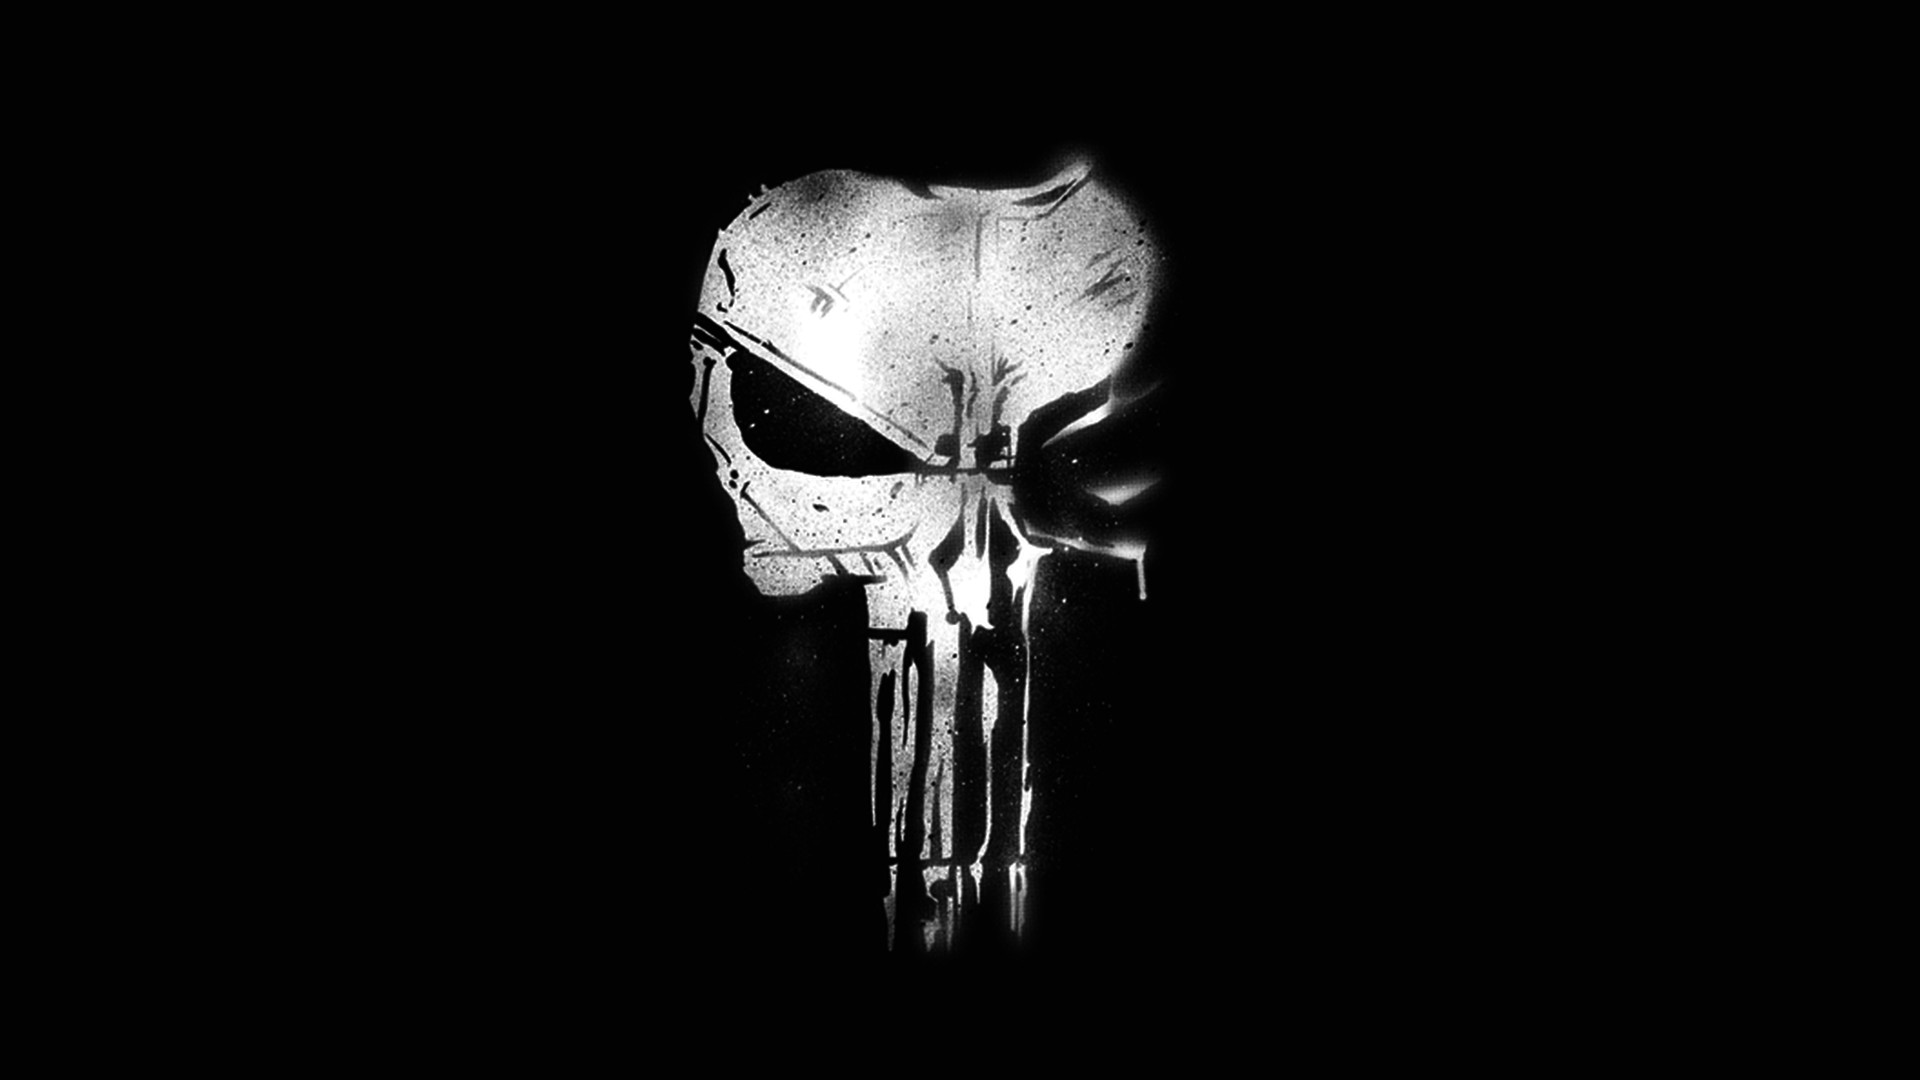 1920x1080 Fernsehserien - The Punisher Skelett Marvel Comics Punisher Wallpaper